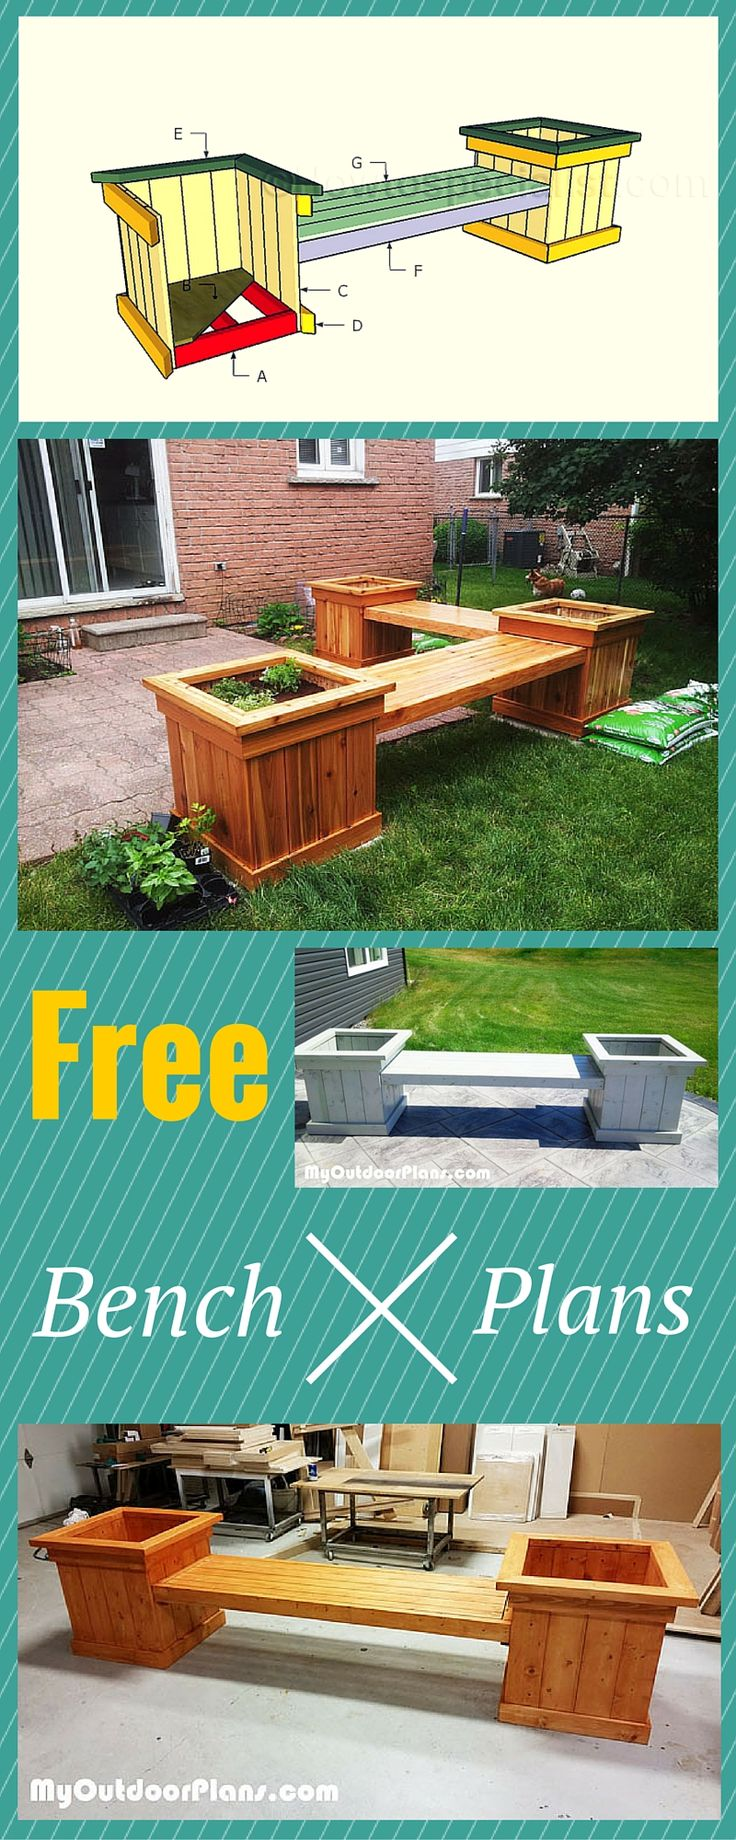 best for the home images on pinterest woodworking carpentry